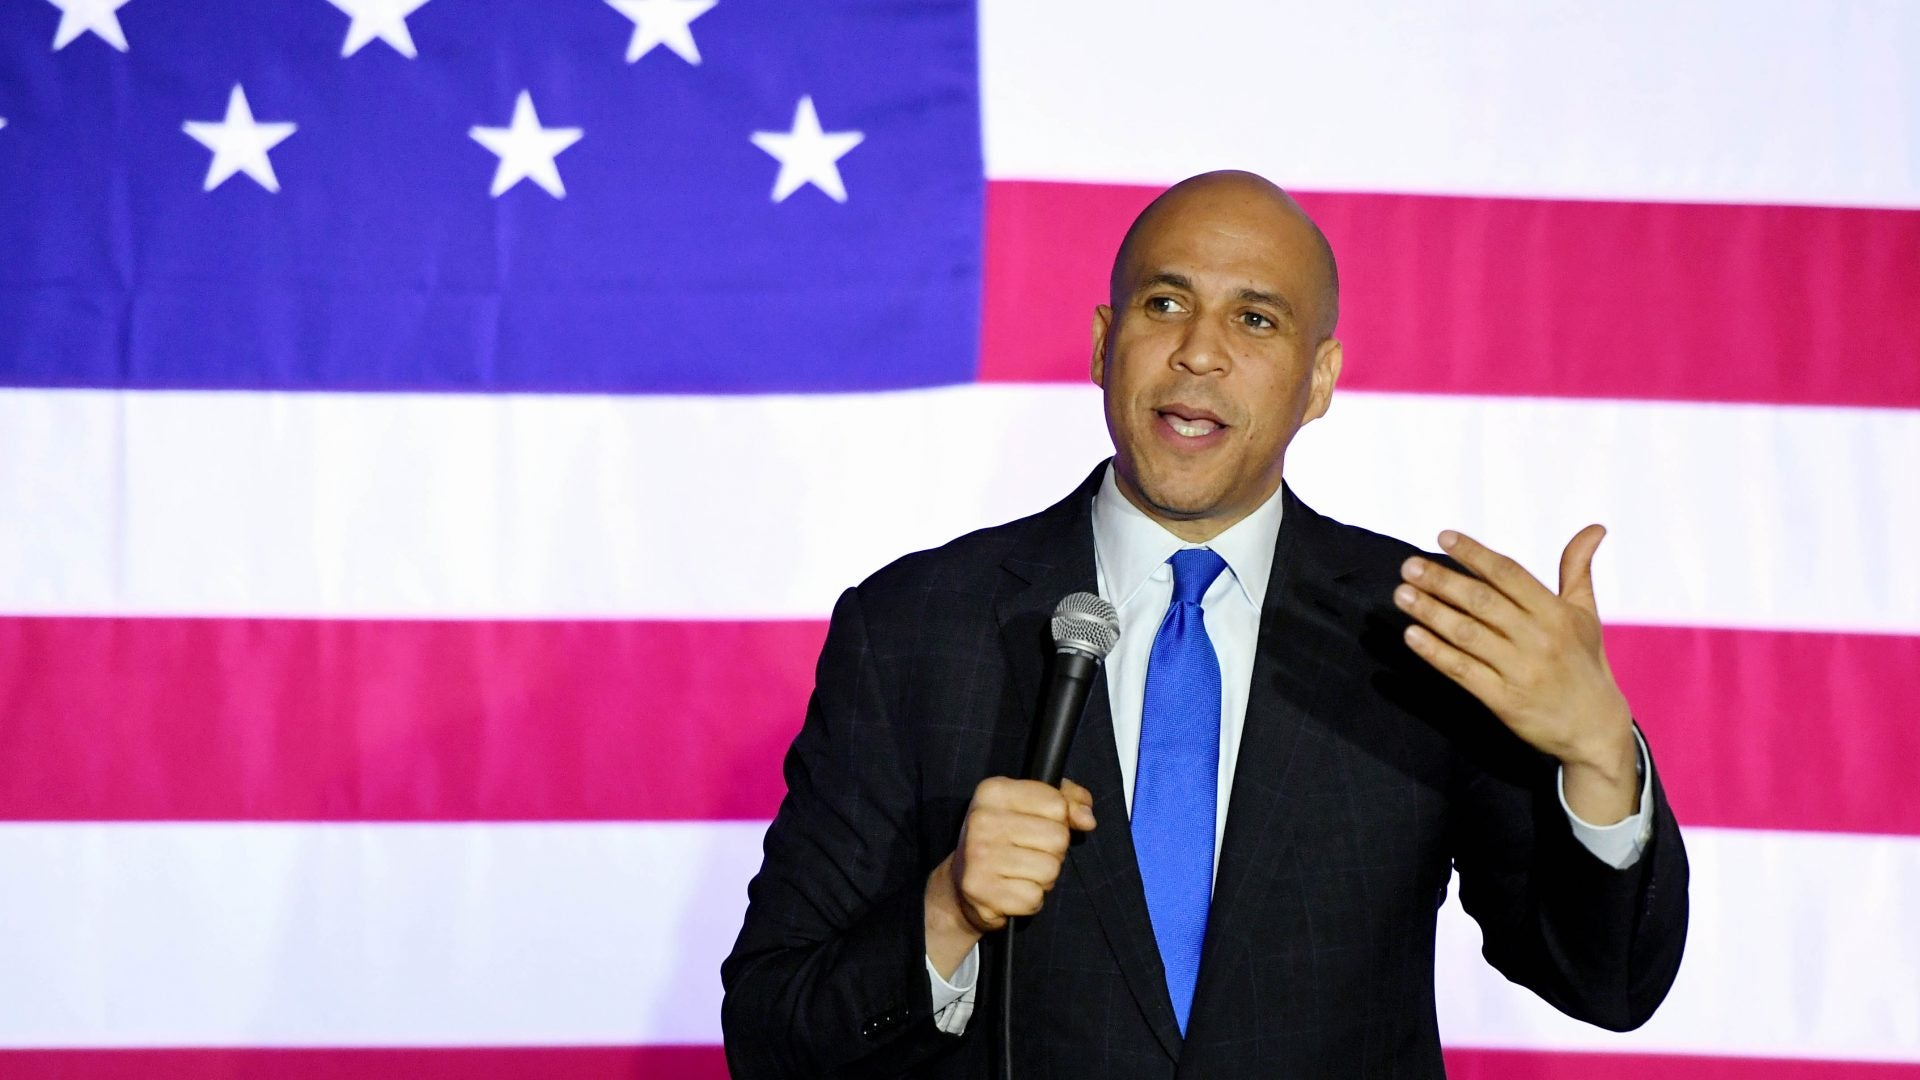 Sen. Cory Booker: 'This Election Can't Just Be About Trump'